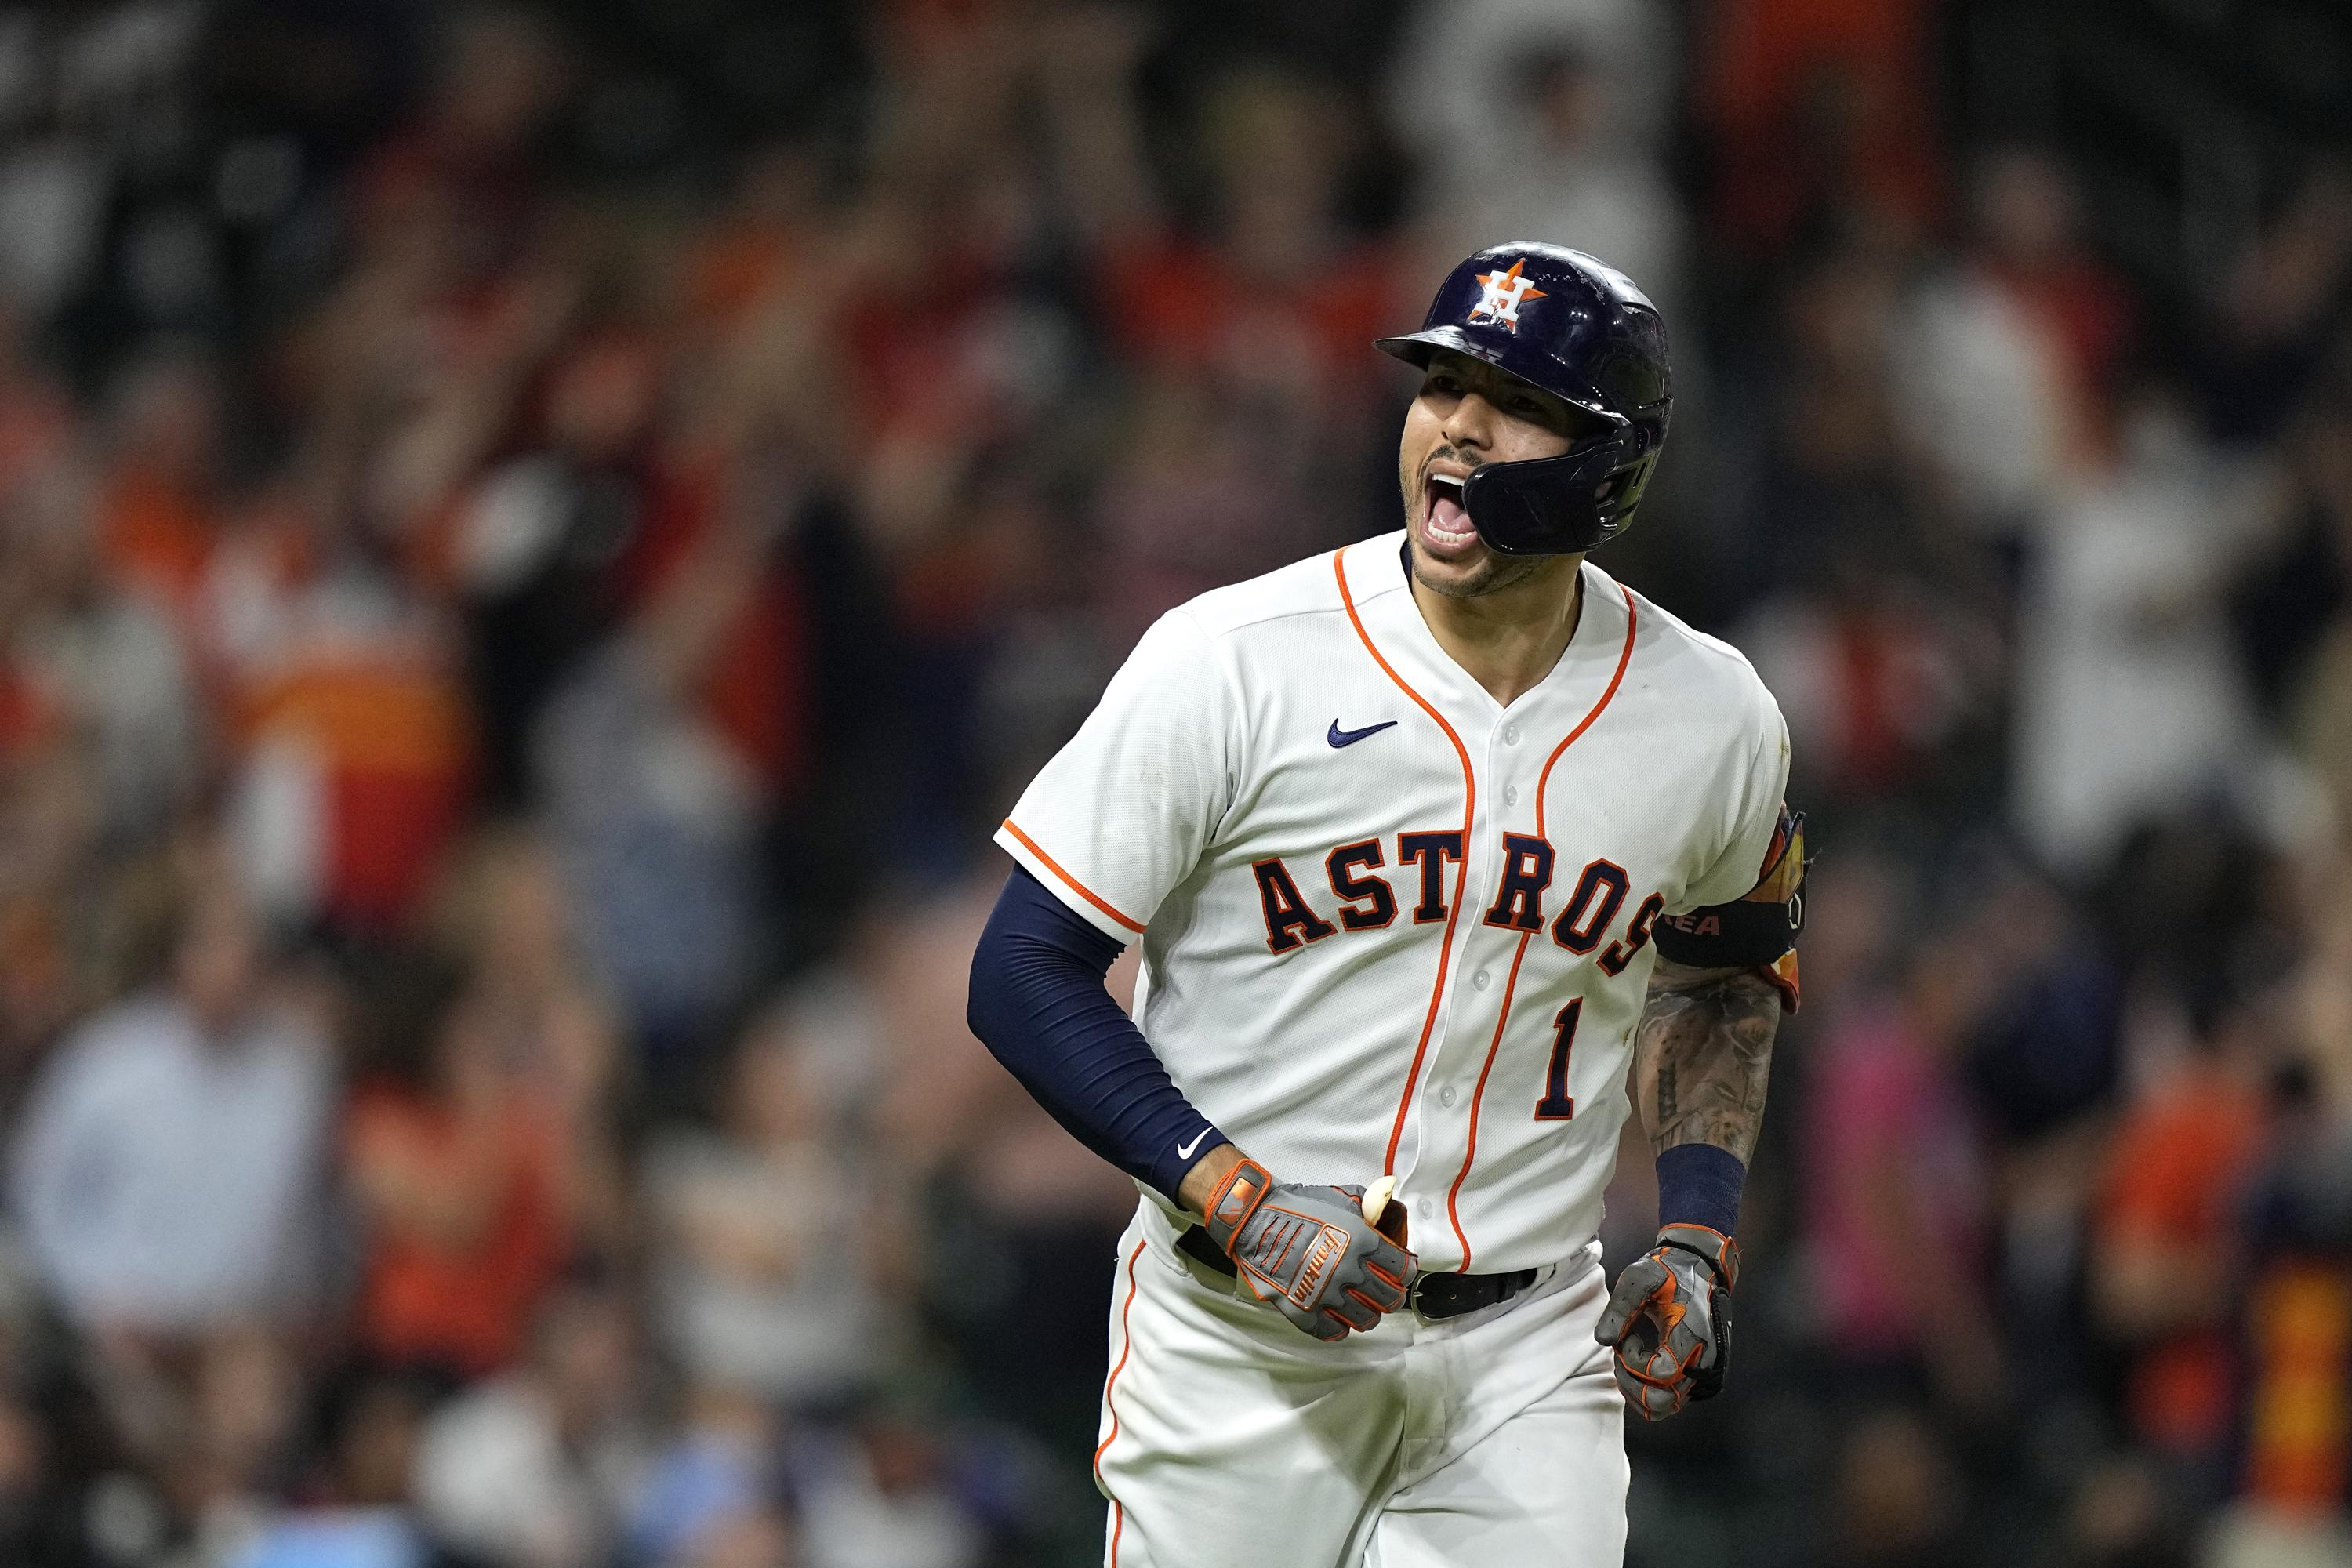 Correa prepares for what could be final run with Astros - Associated Press